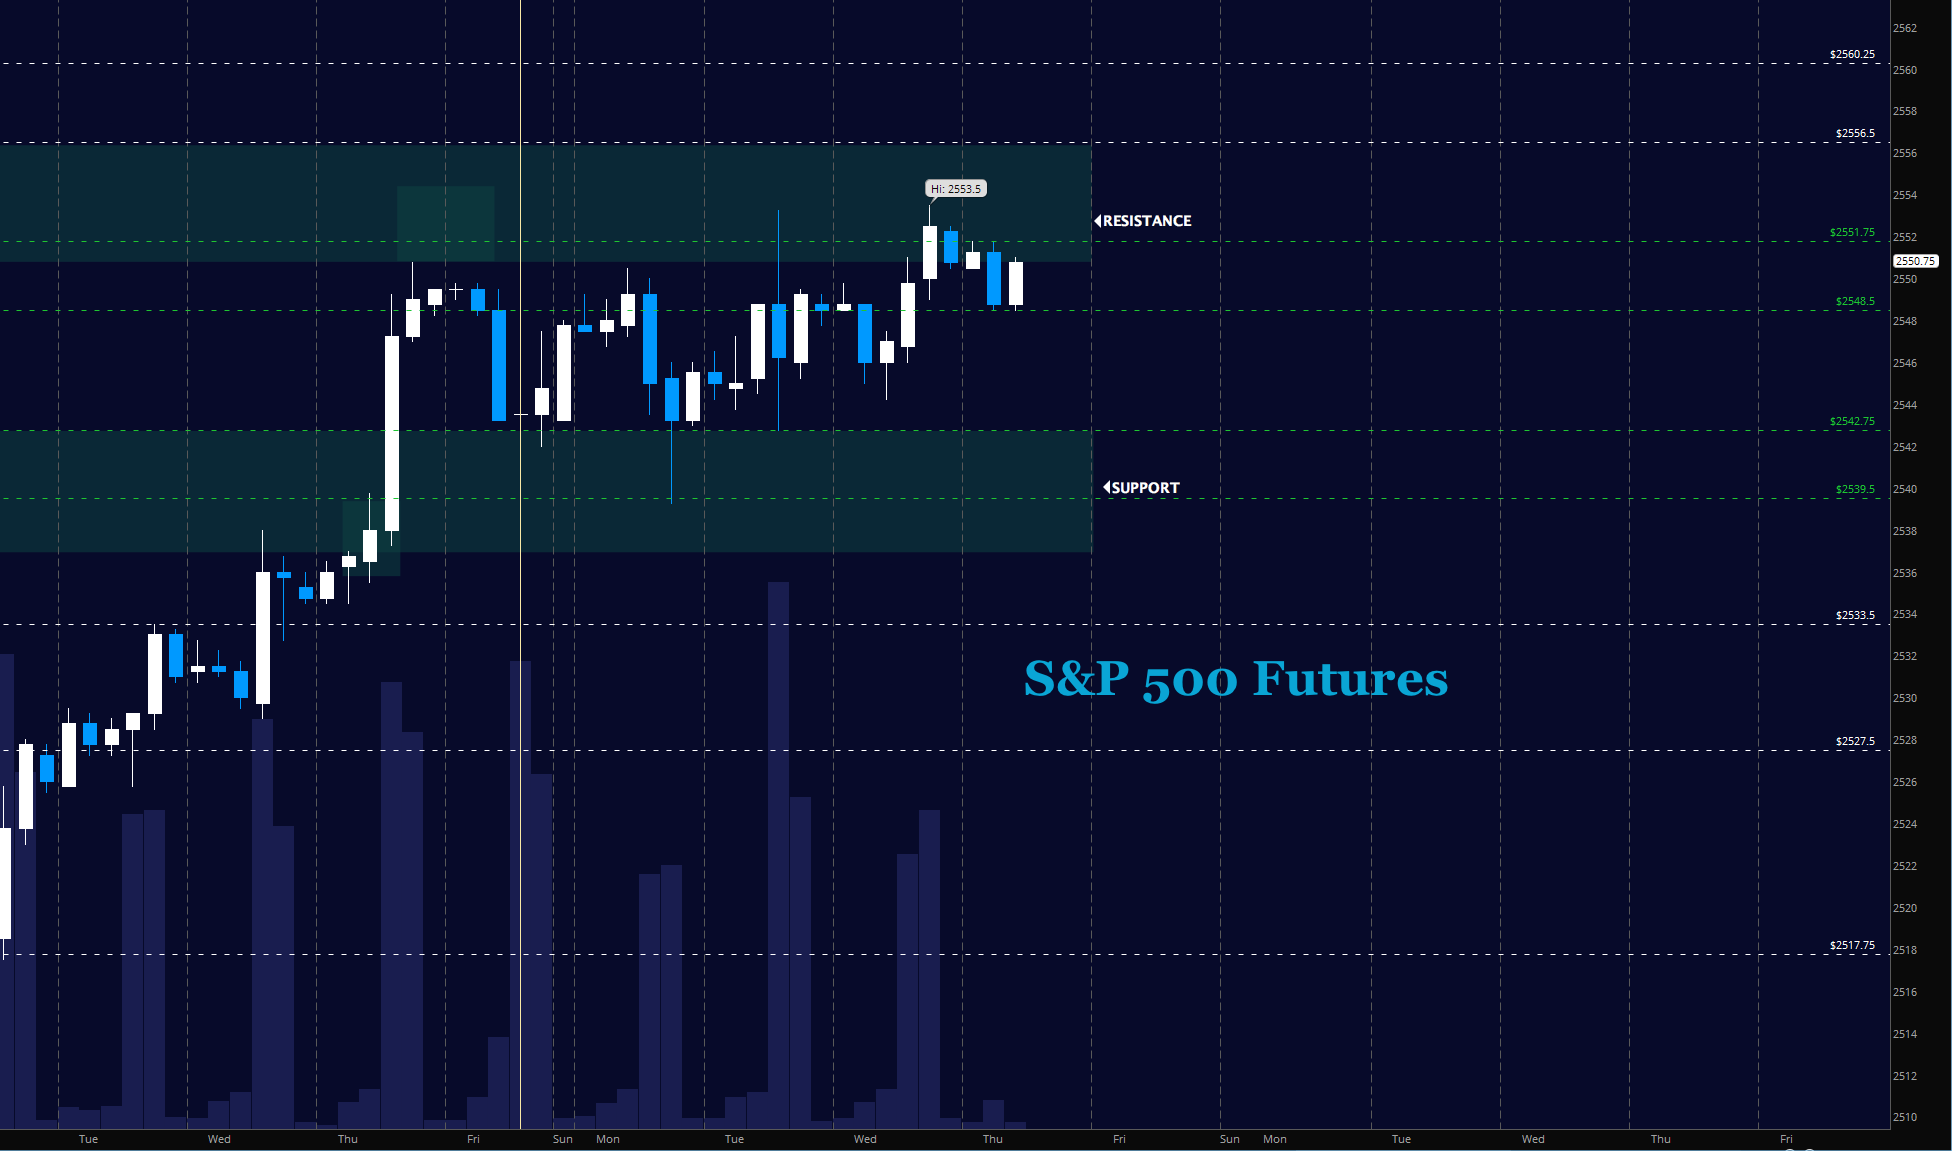 s&p 500 futures trading price pivots targets_october 12